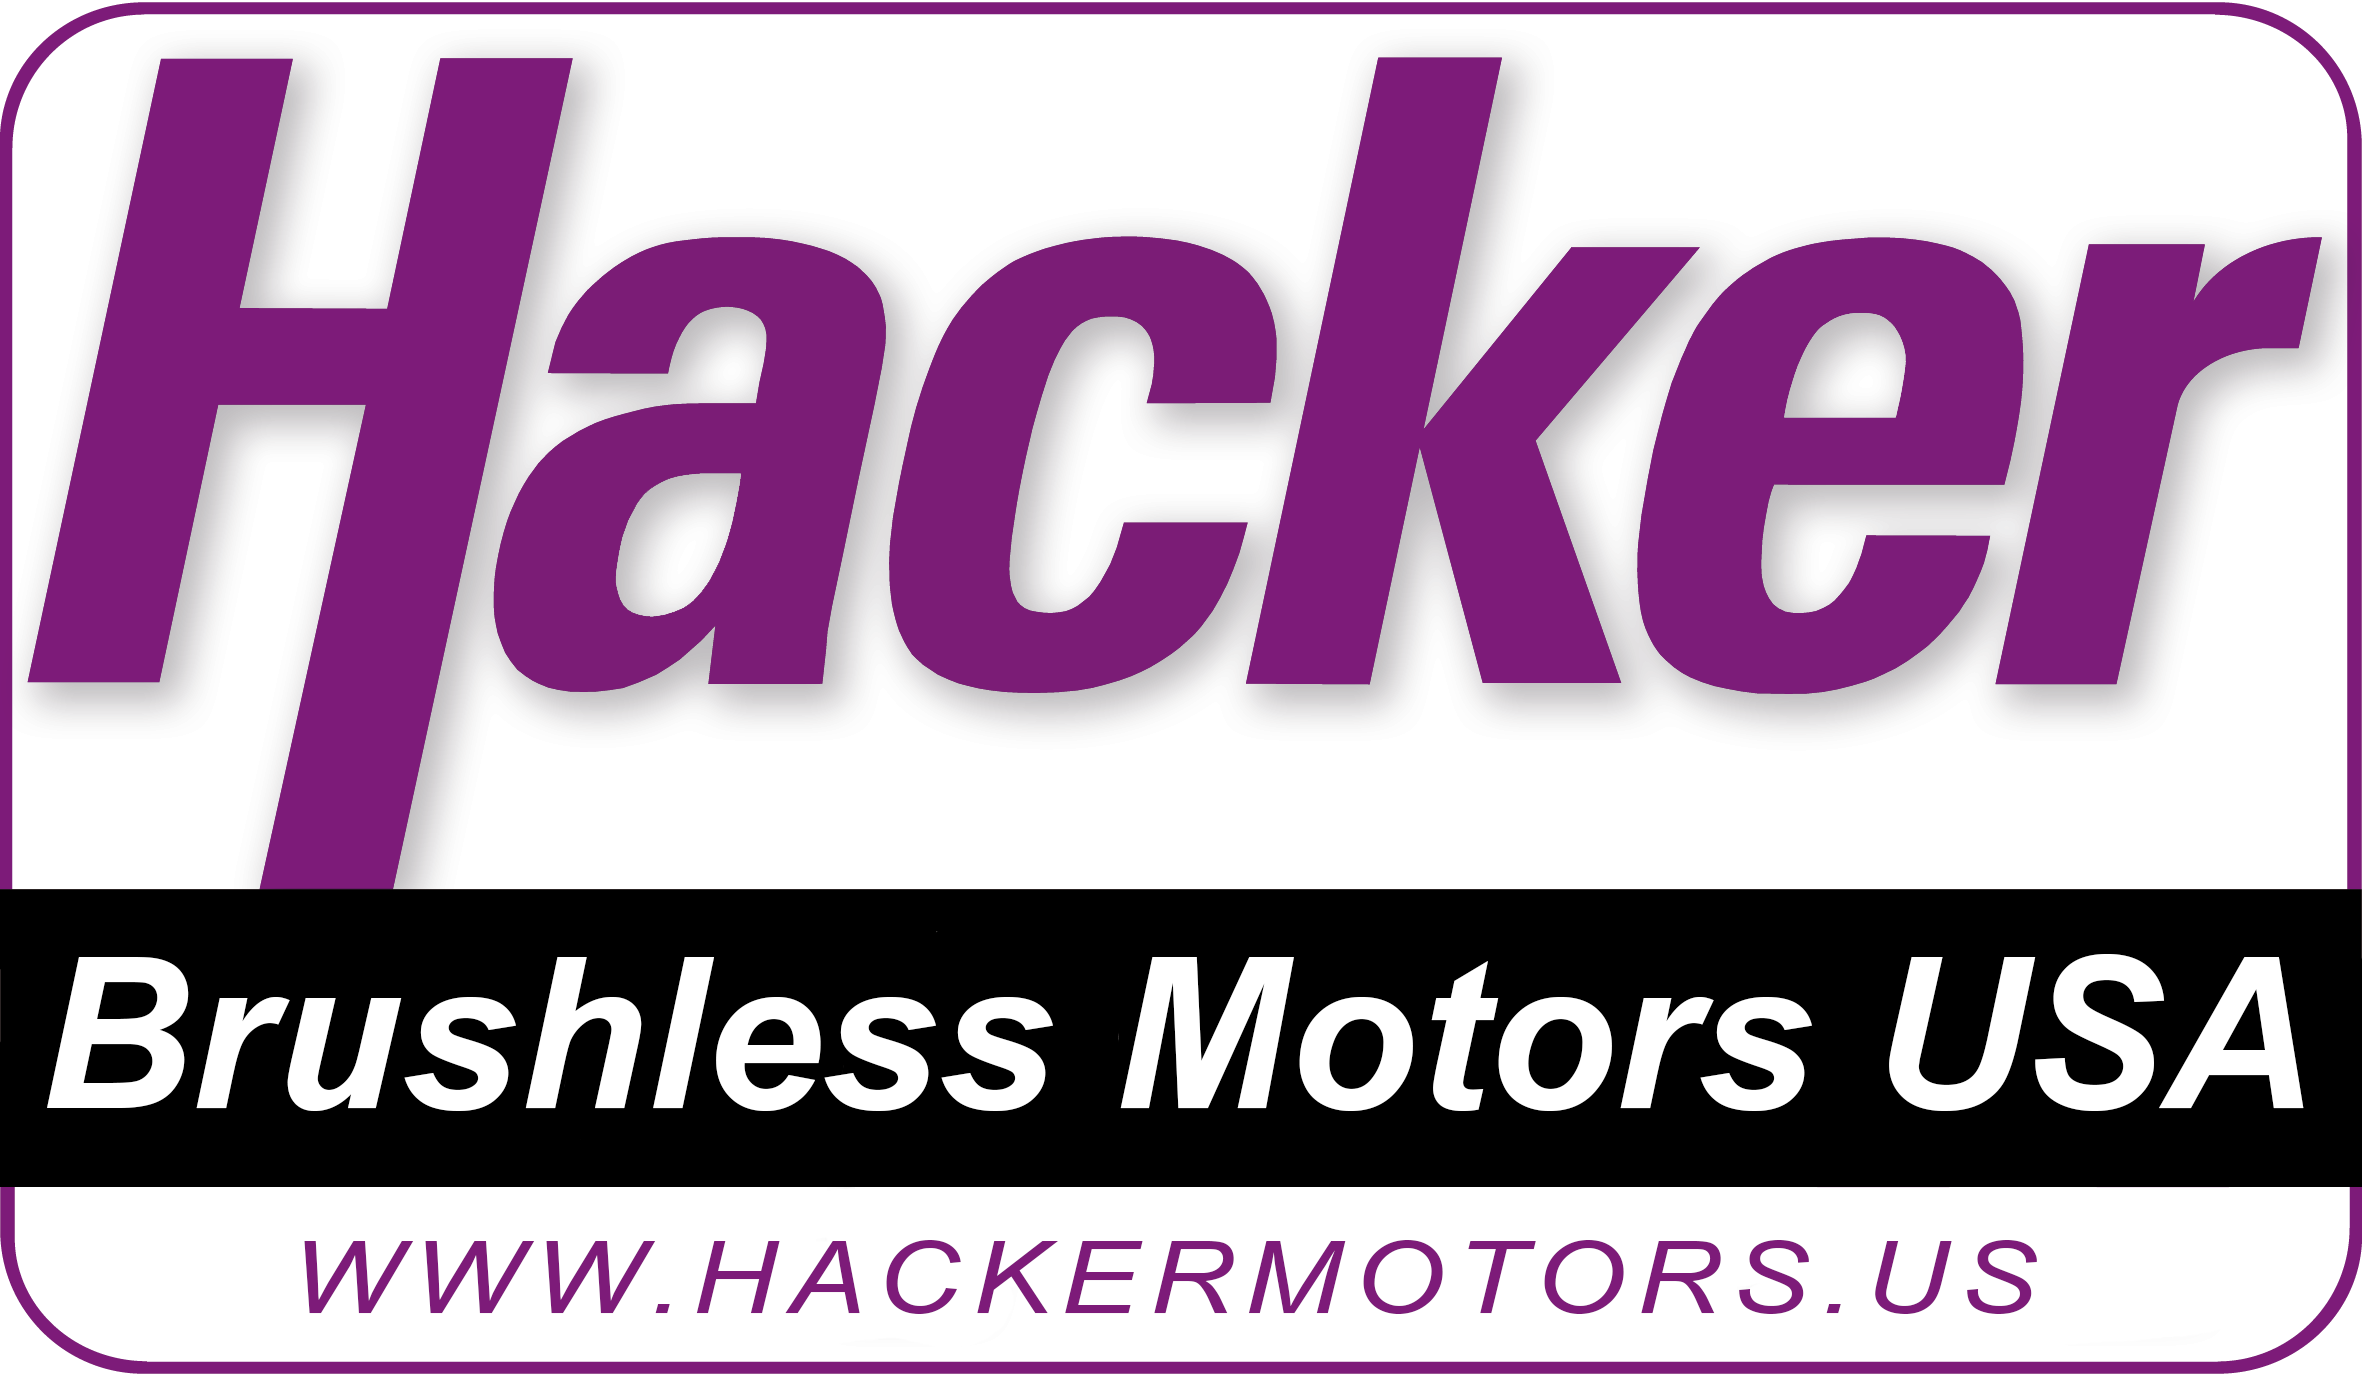 Hacker Motor Shop USA